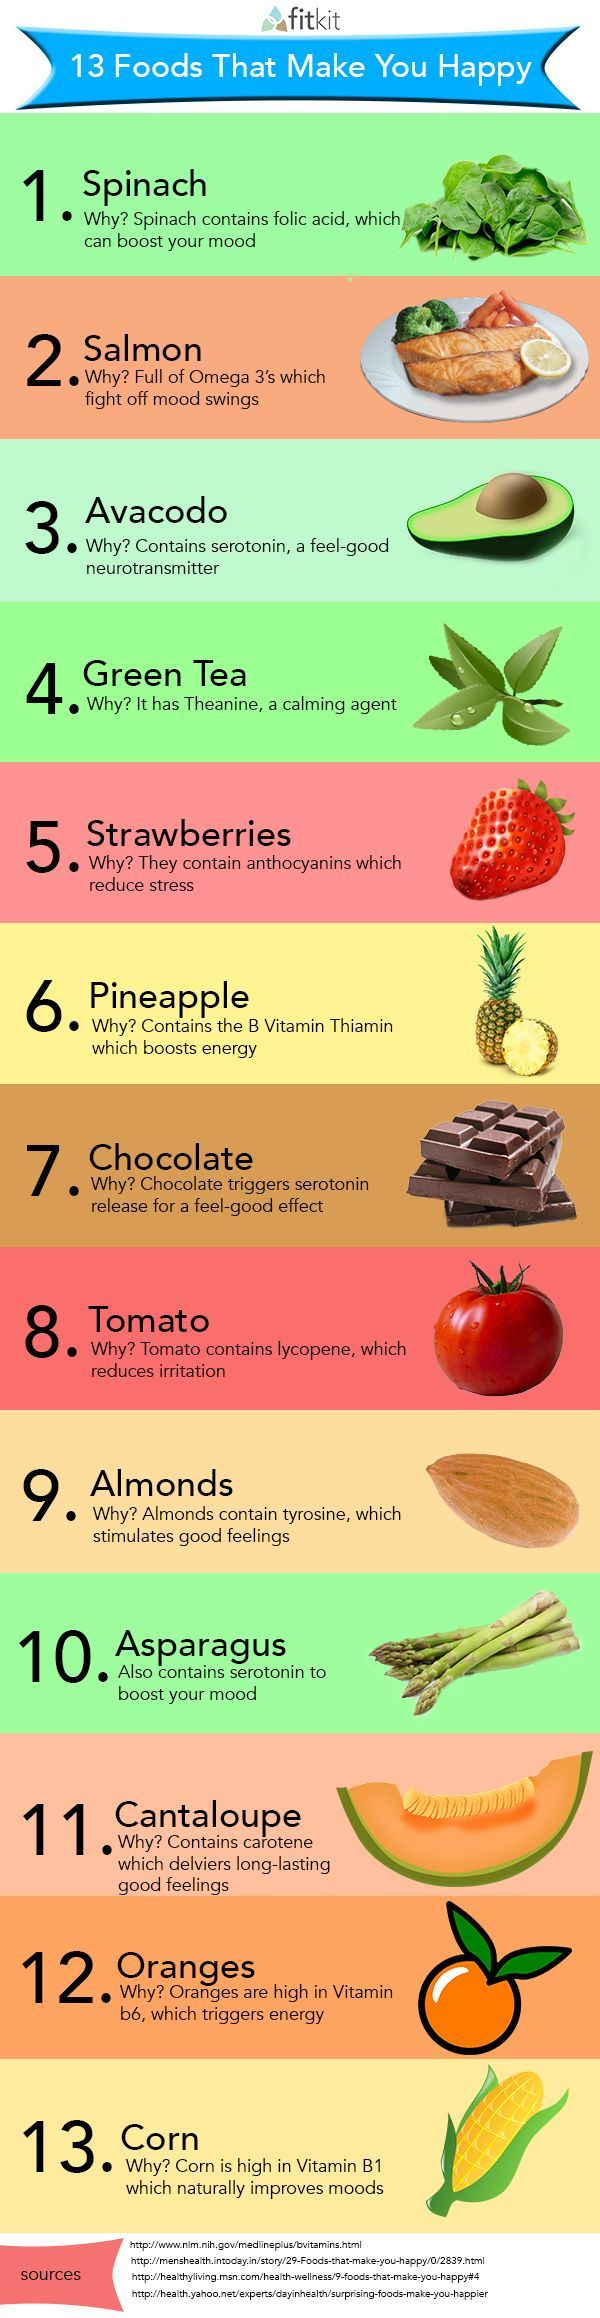 13 Foods That Make You Happy, that must be why I am usually in a good mood cause these are my favorite foods!